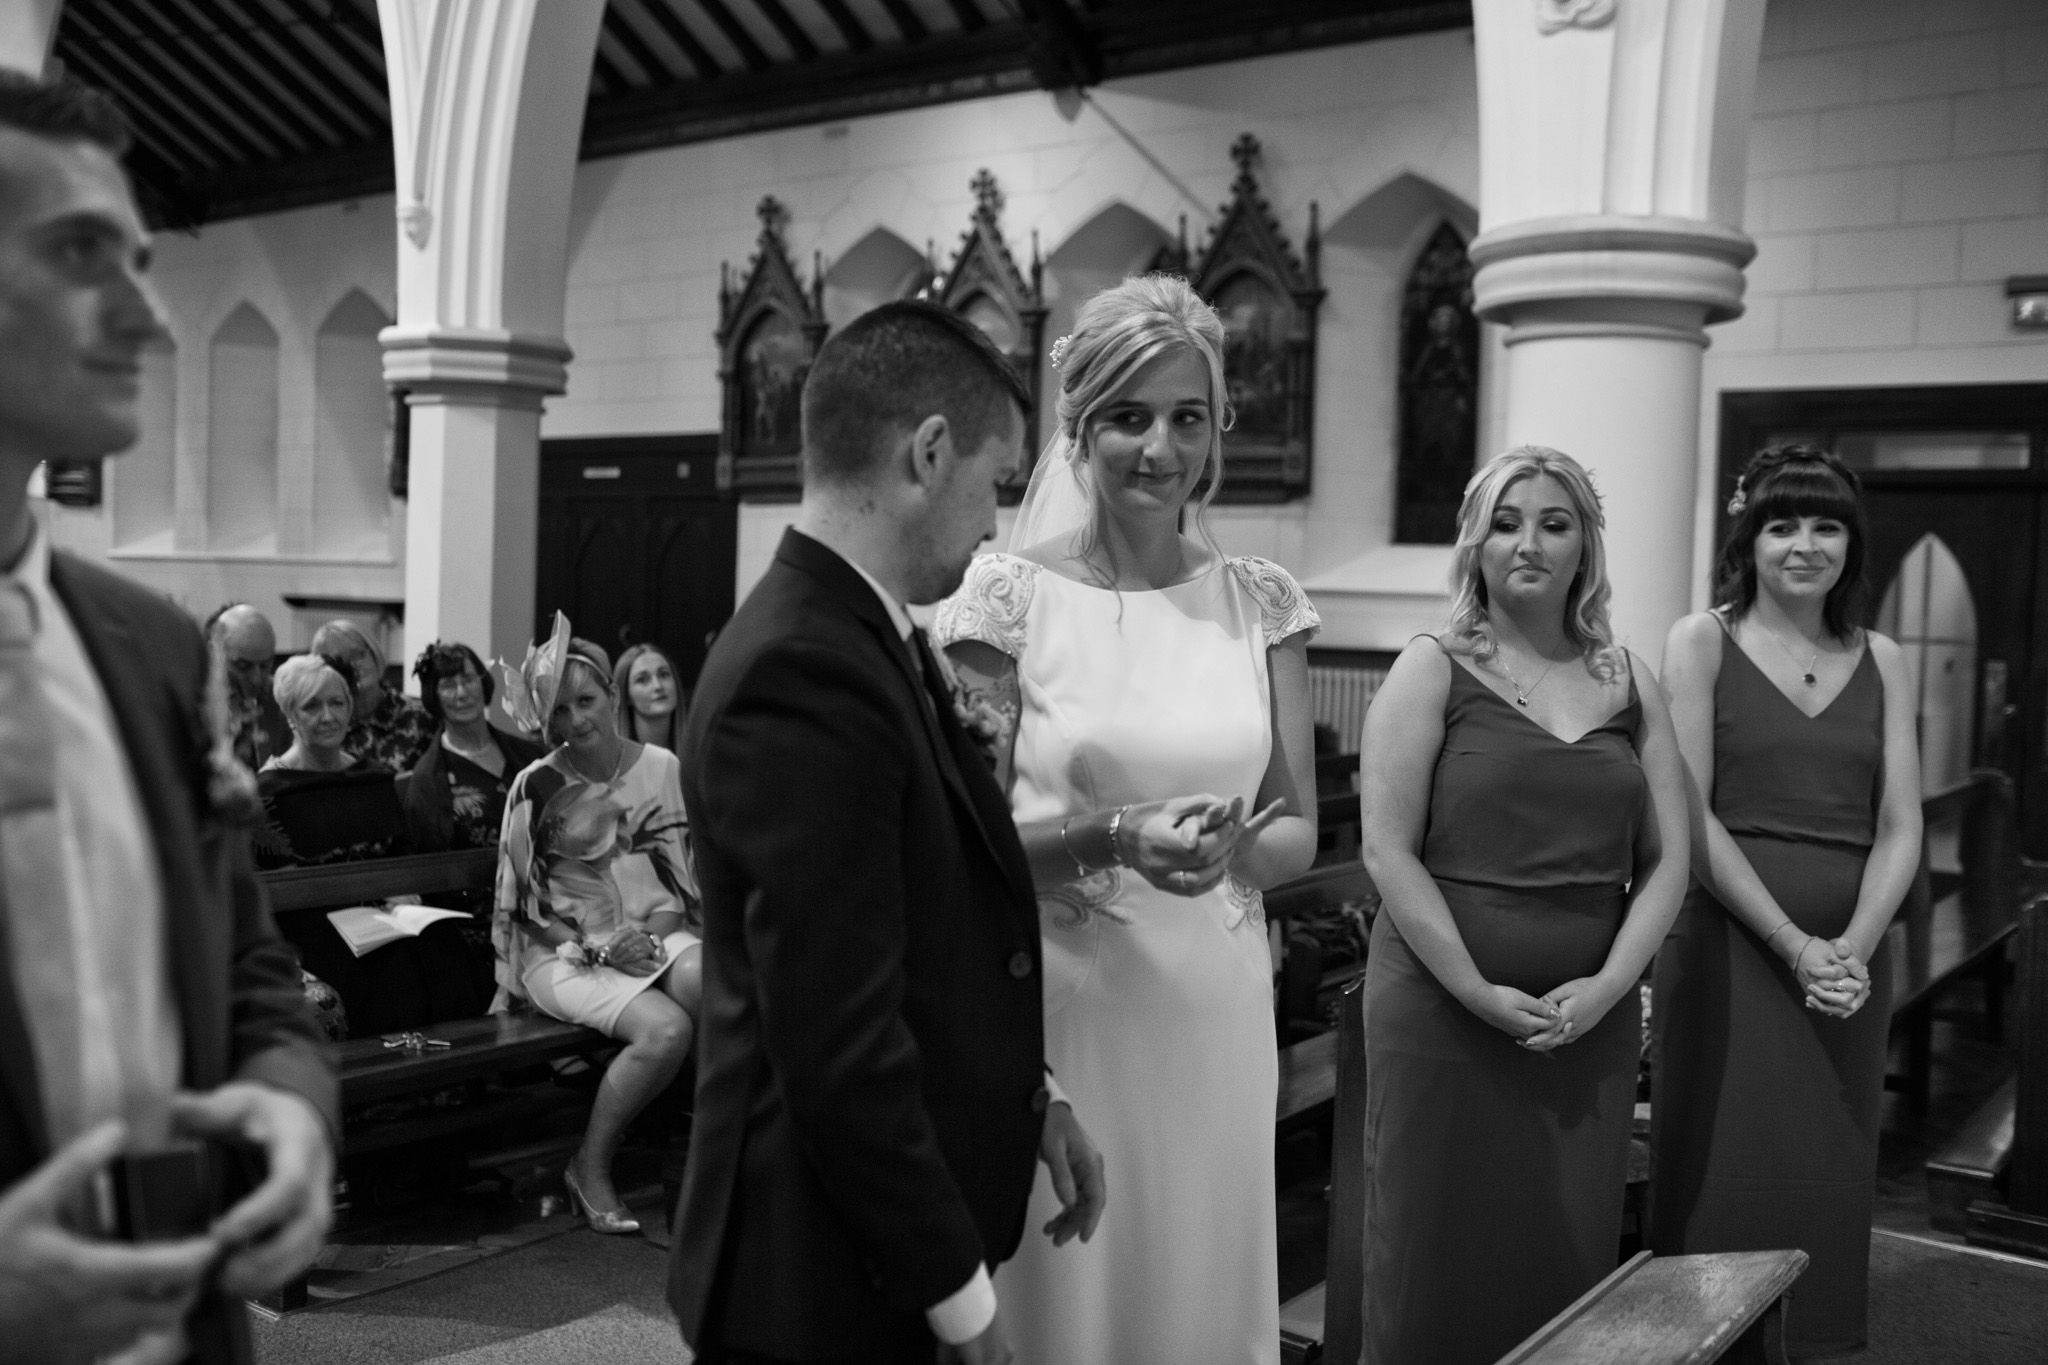 Mark_Barnes_Northern_Ireland_Wedding_Photography_Ballyscullion_Park_Wedding_Photography_Stef&Bobby-20.jpg